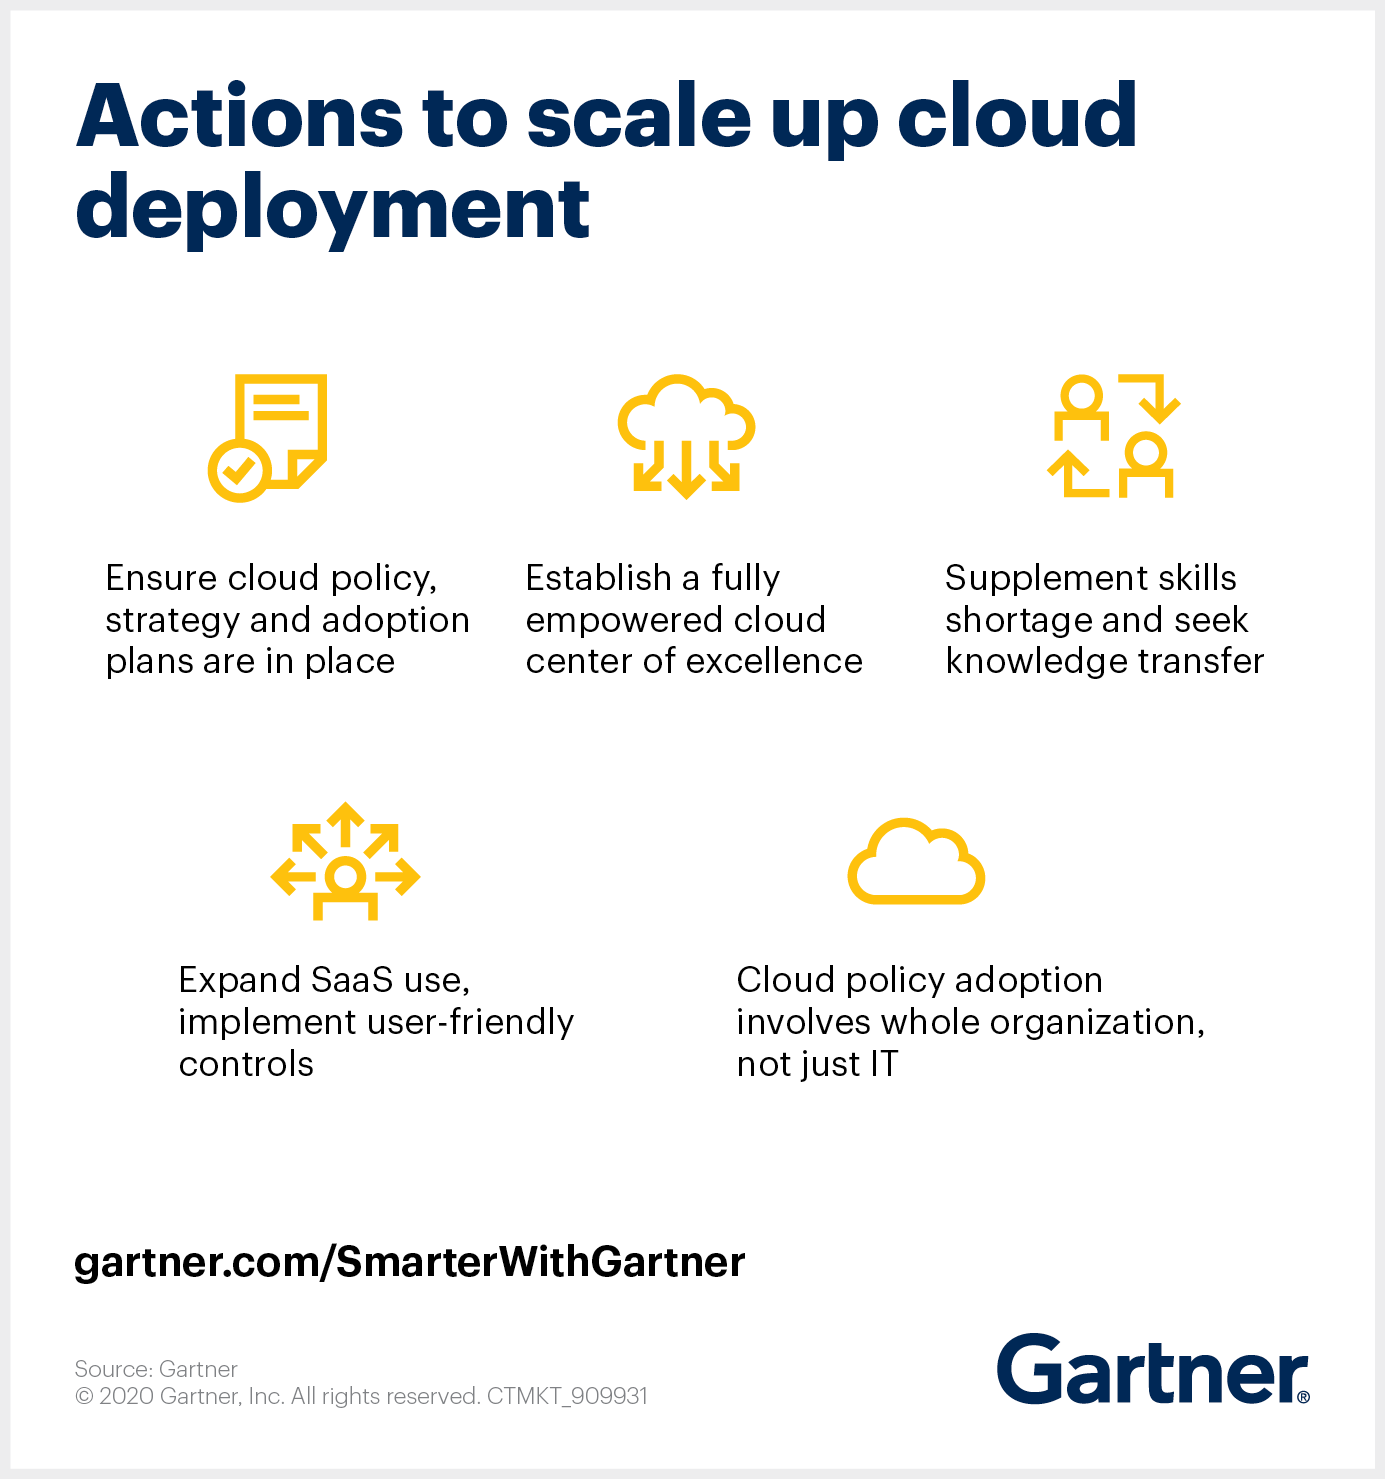 Gartner suggests five actions to scale up cloud deployment